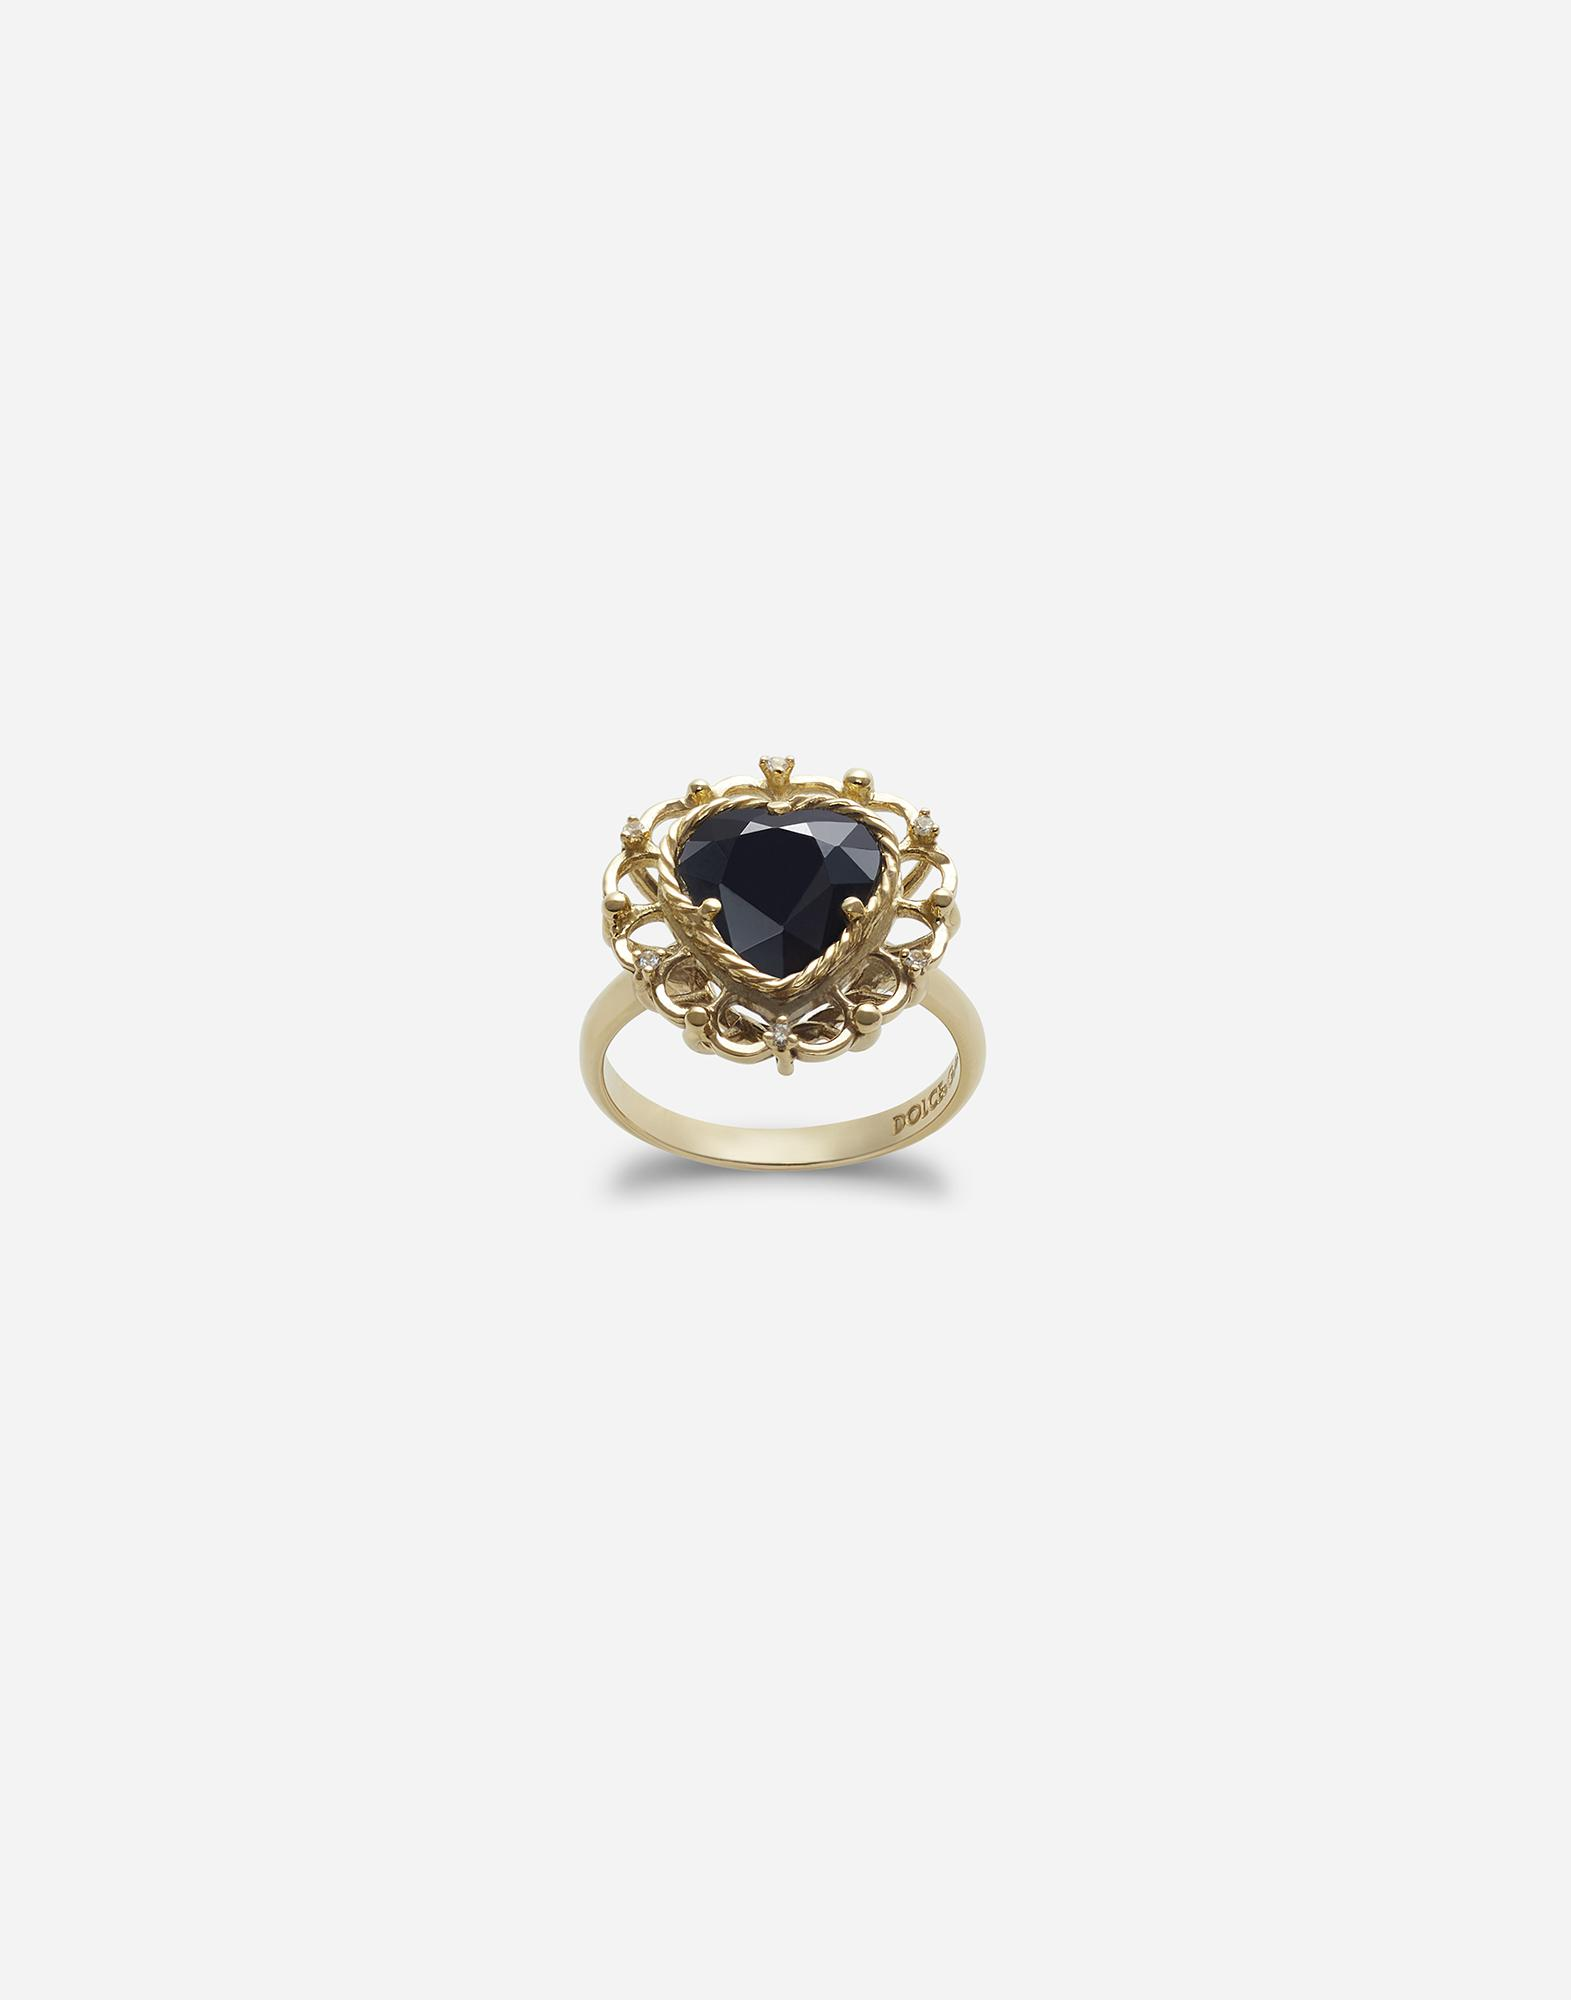 Heart-shaped sapphire ring